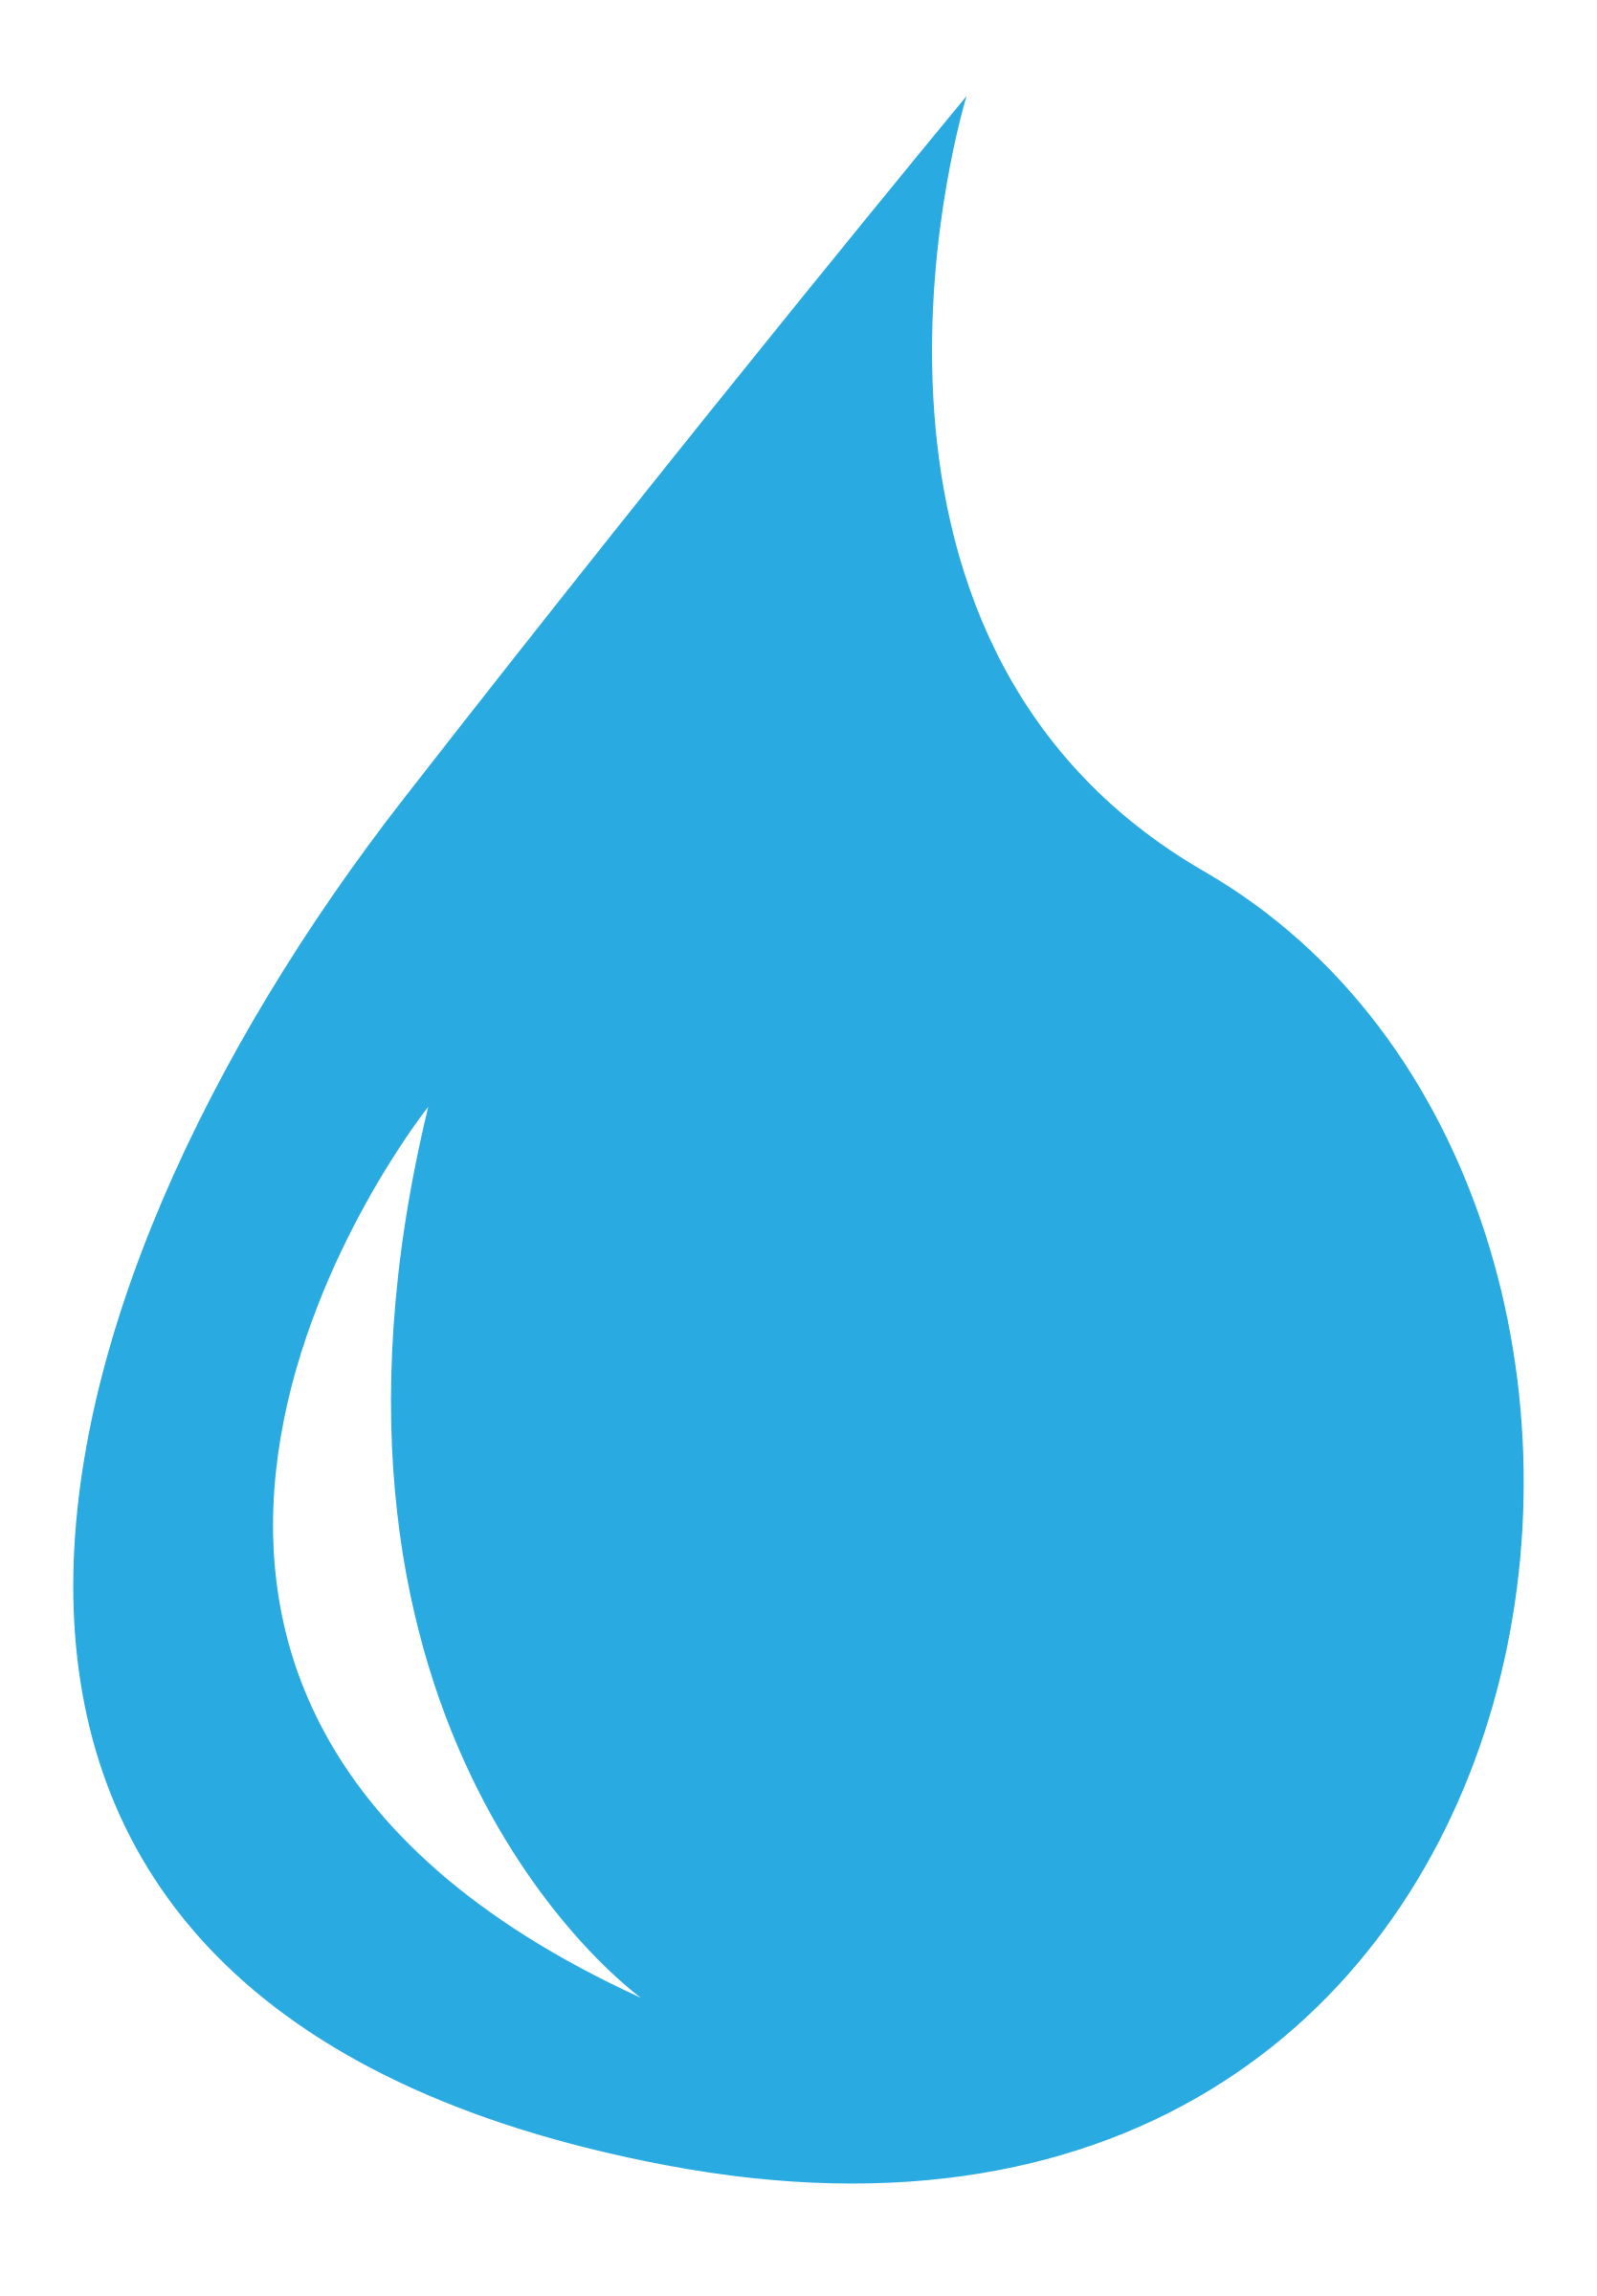 water clipart relay